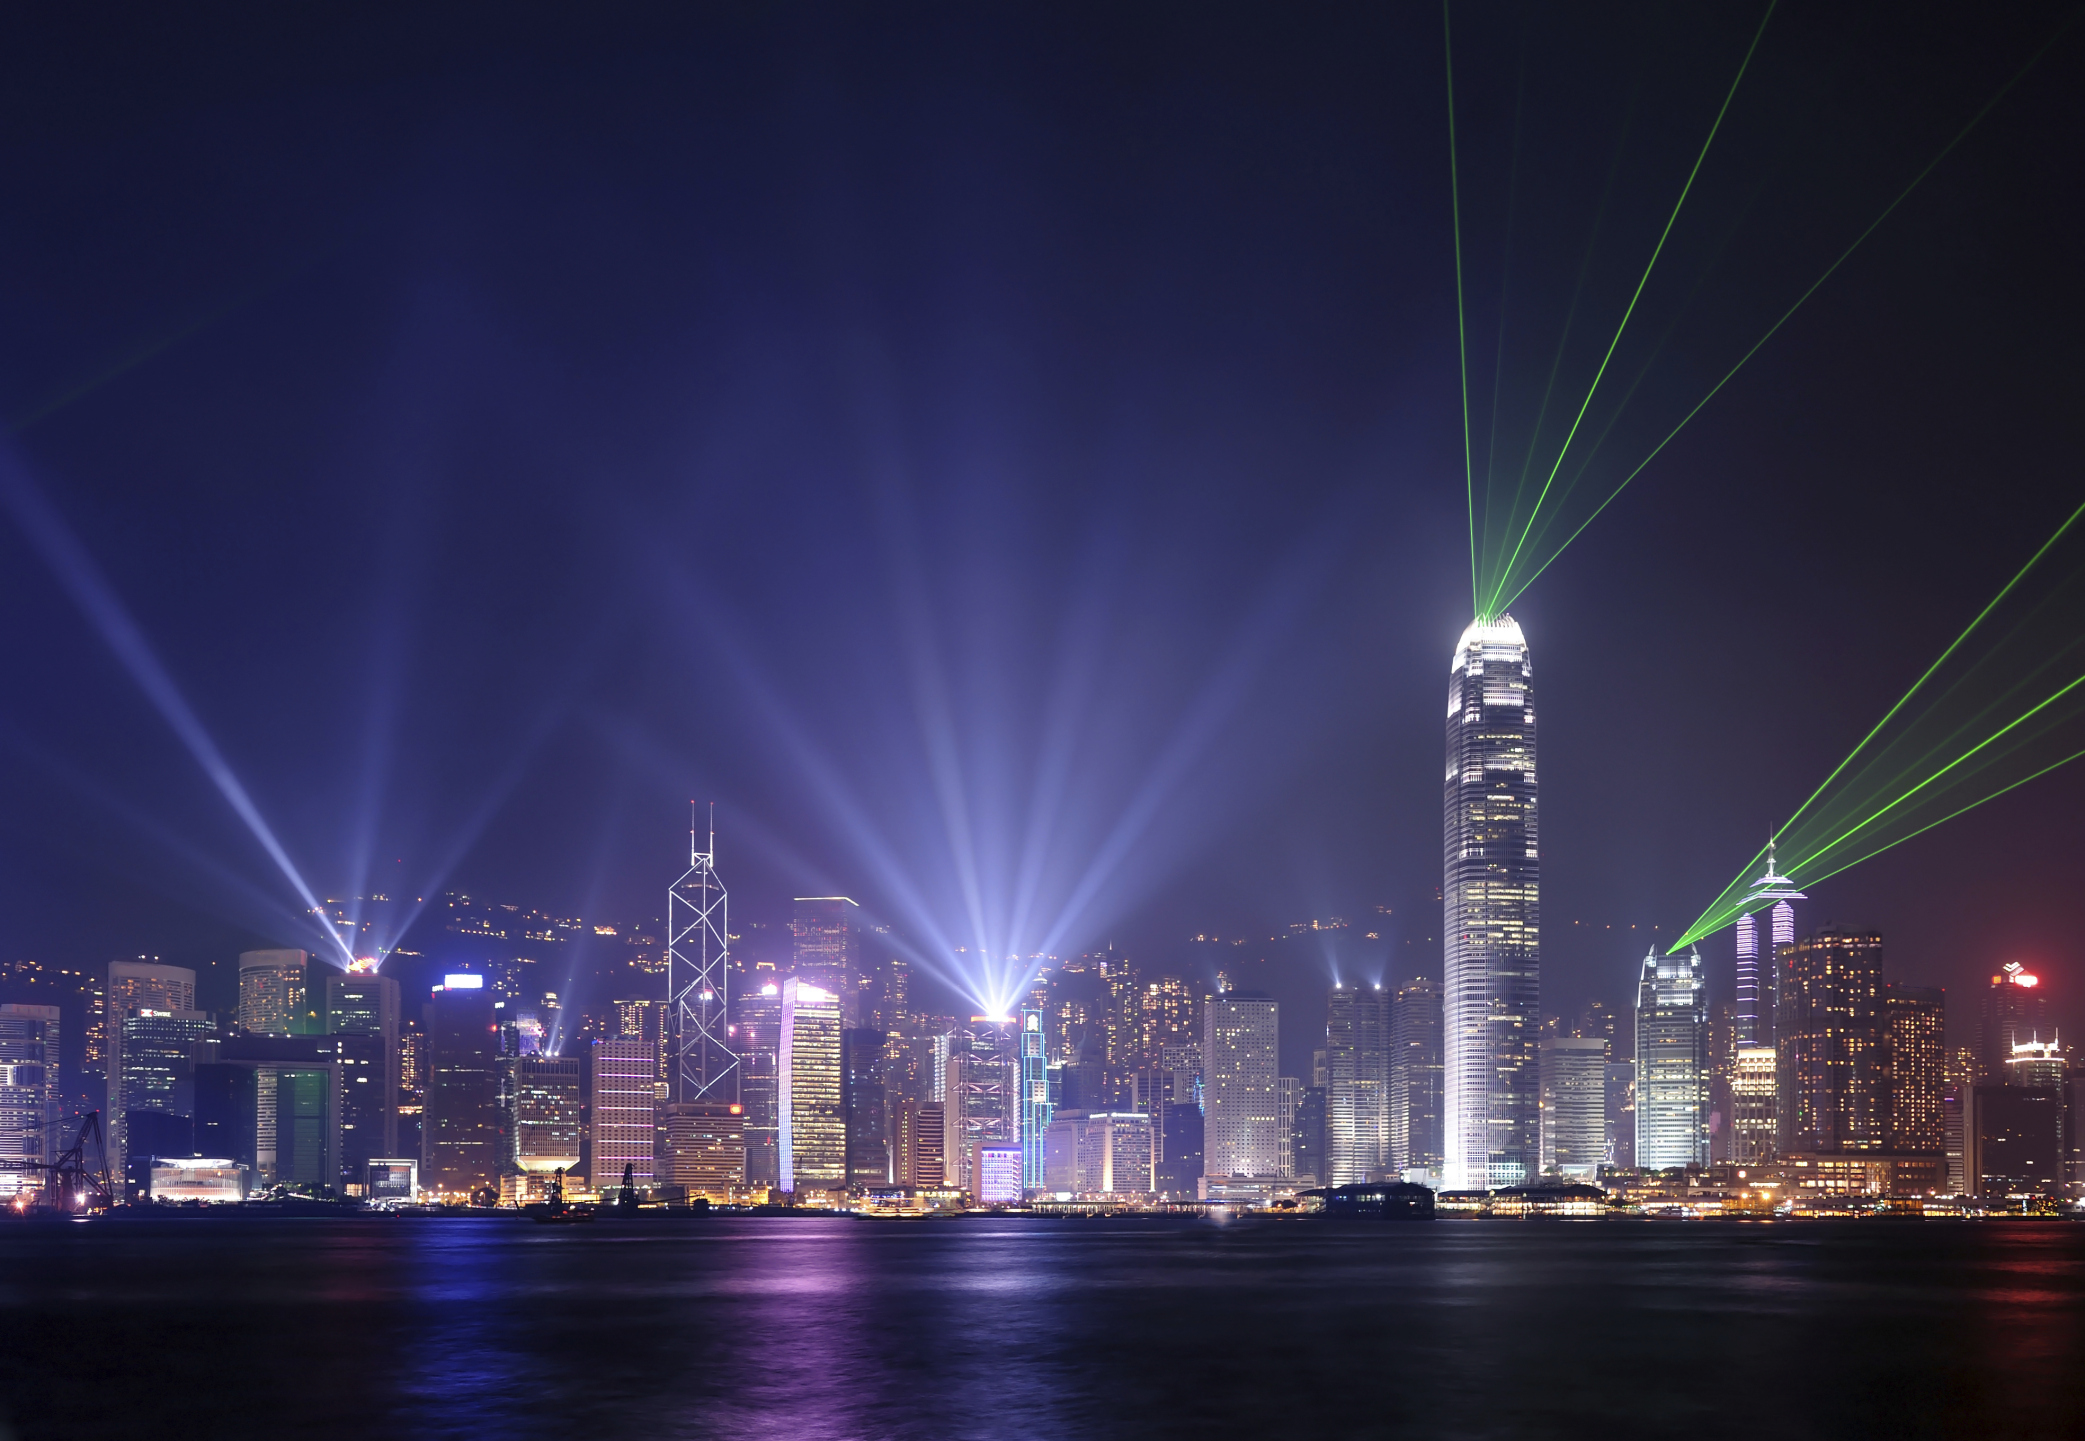 The skyline of Hong Kong. Photo by shirophoto/iStock/Getty Images